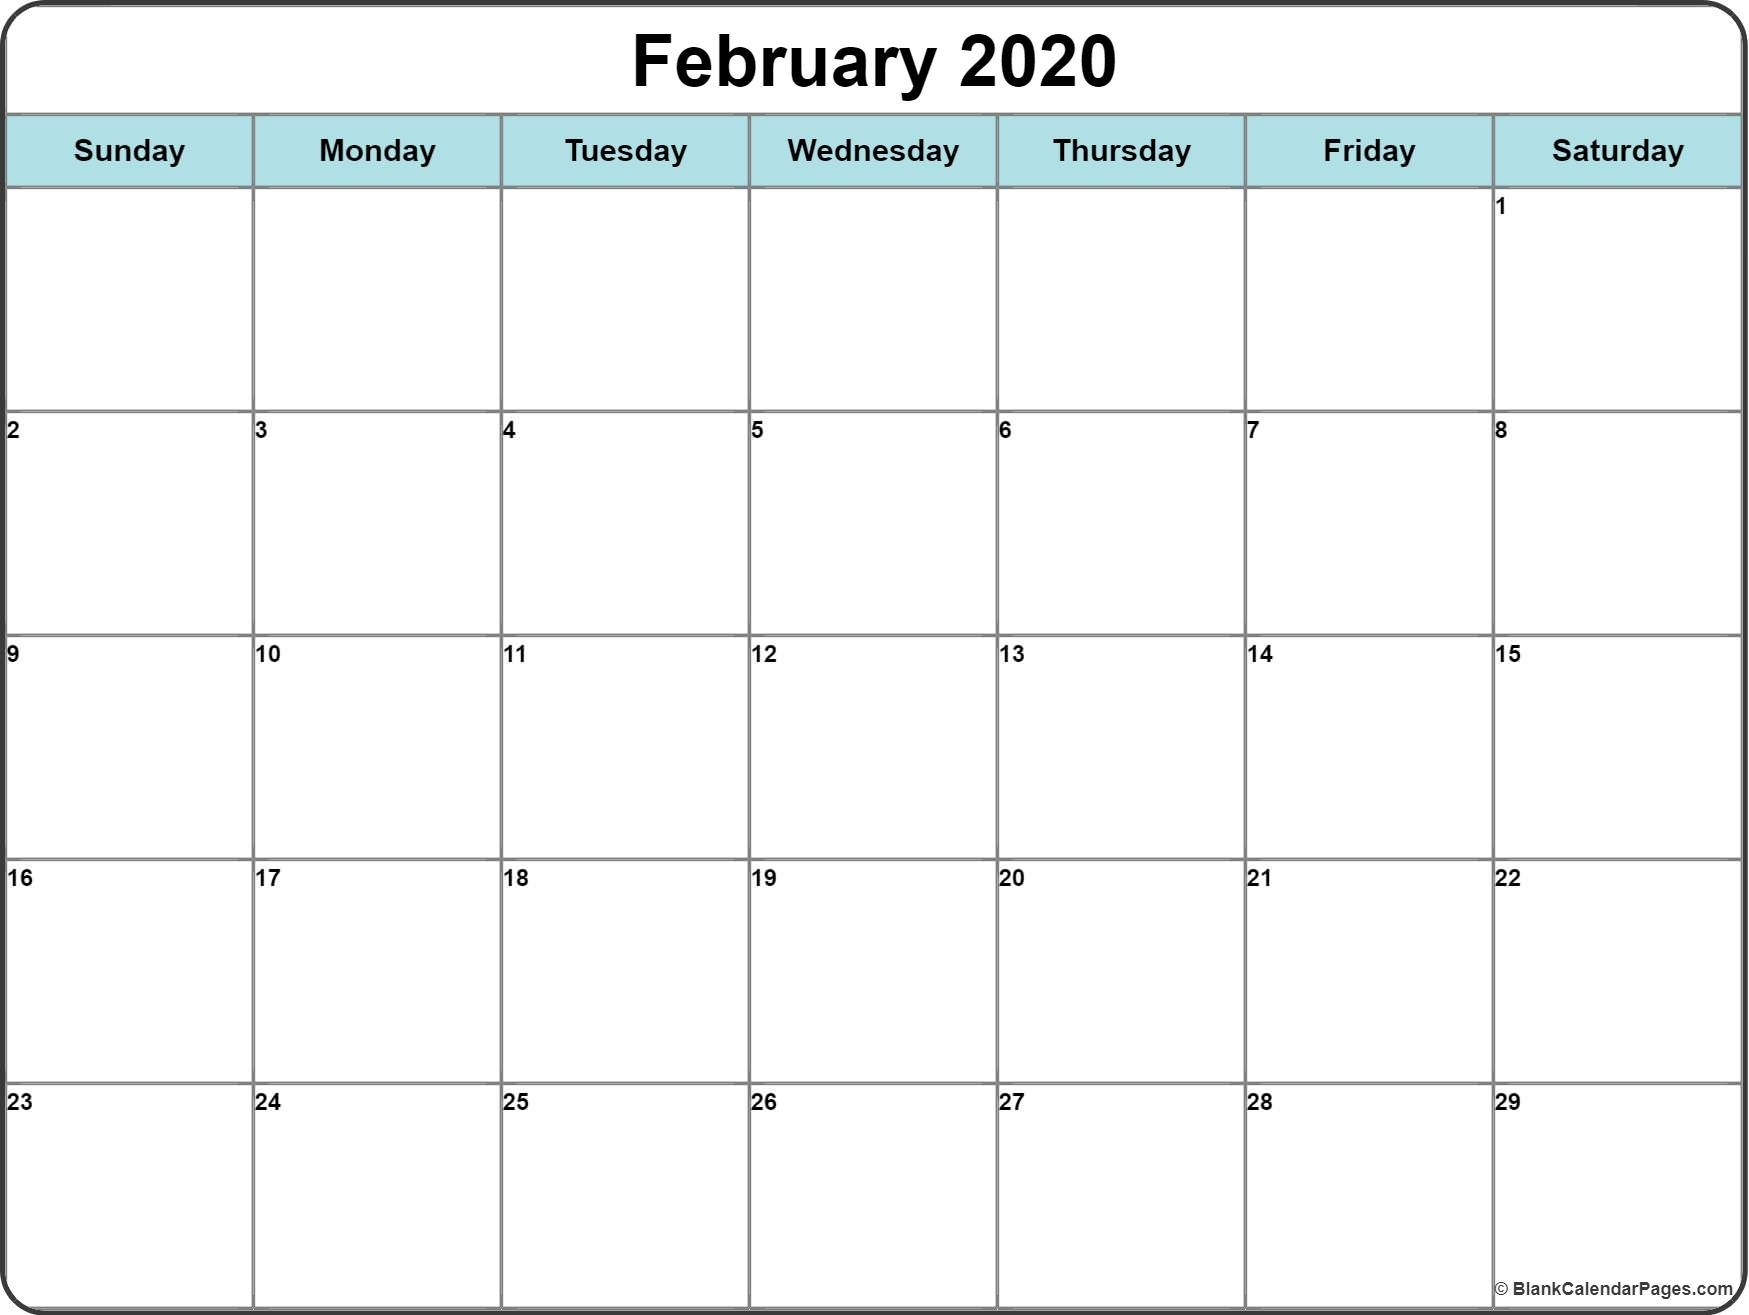 February 2020 Calendar | Free Printable Monthly Calendars intended for 2020 Calender With Space To Write